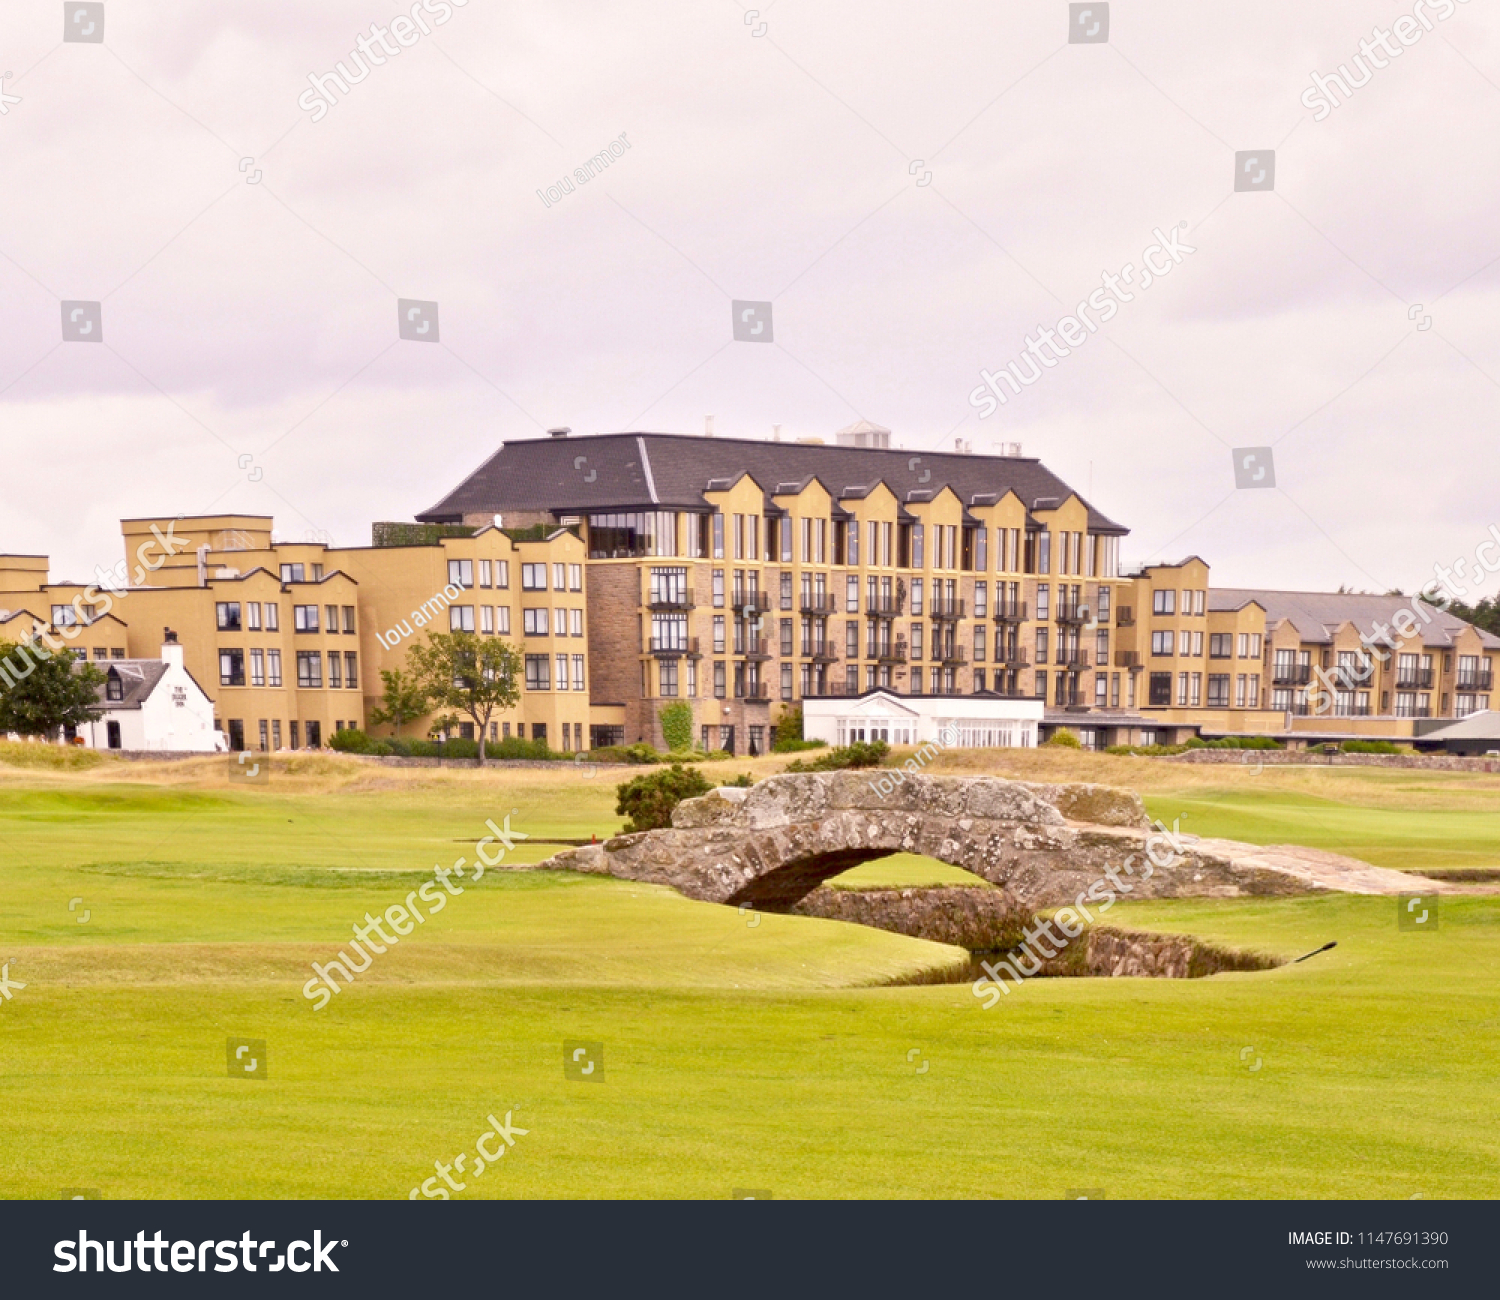 Old Course Hotel Golf Resort Spa Stock Photo Edit Now 1147691390